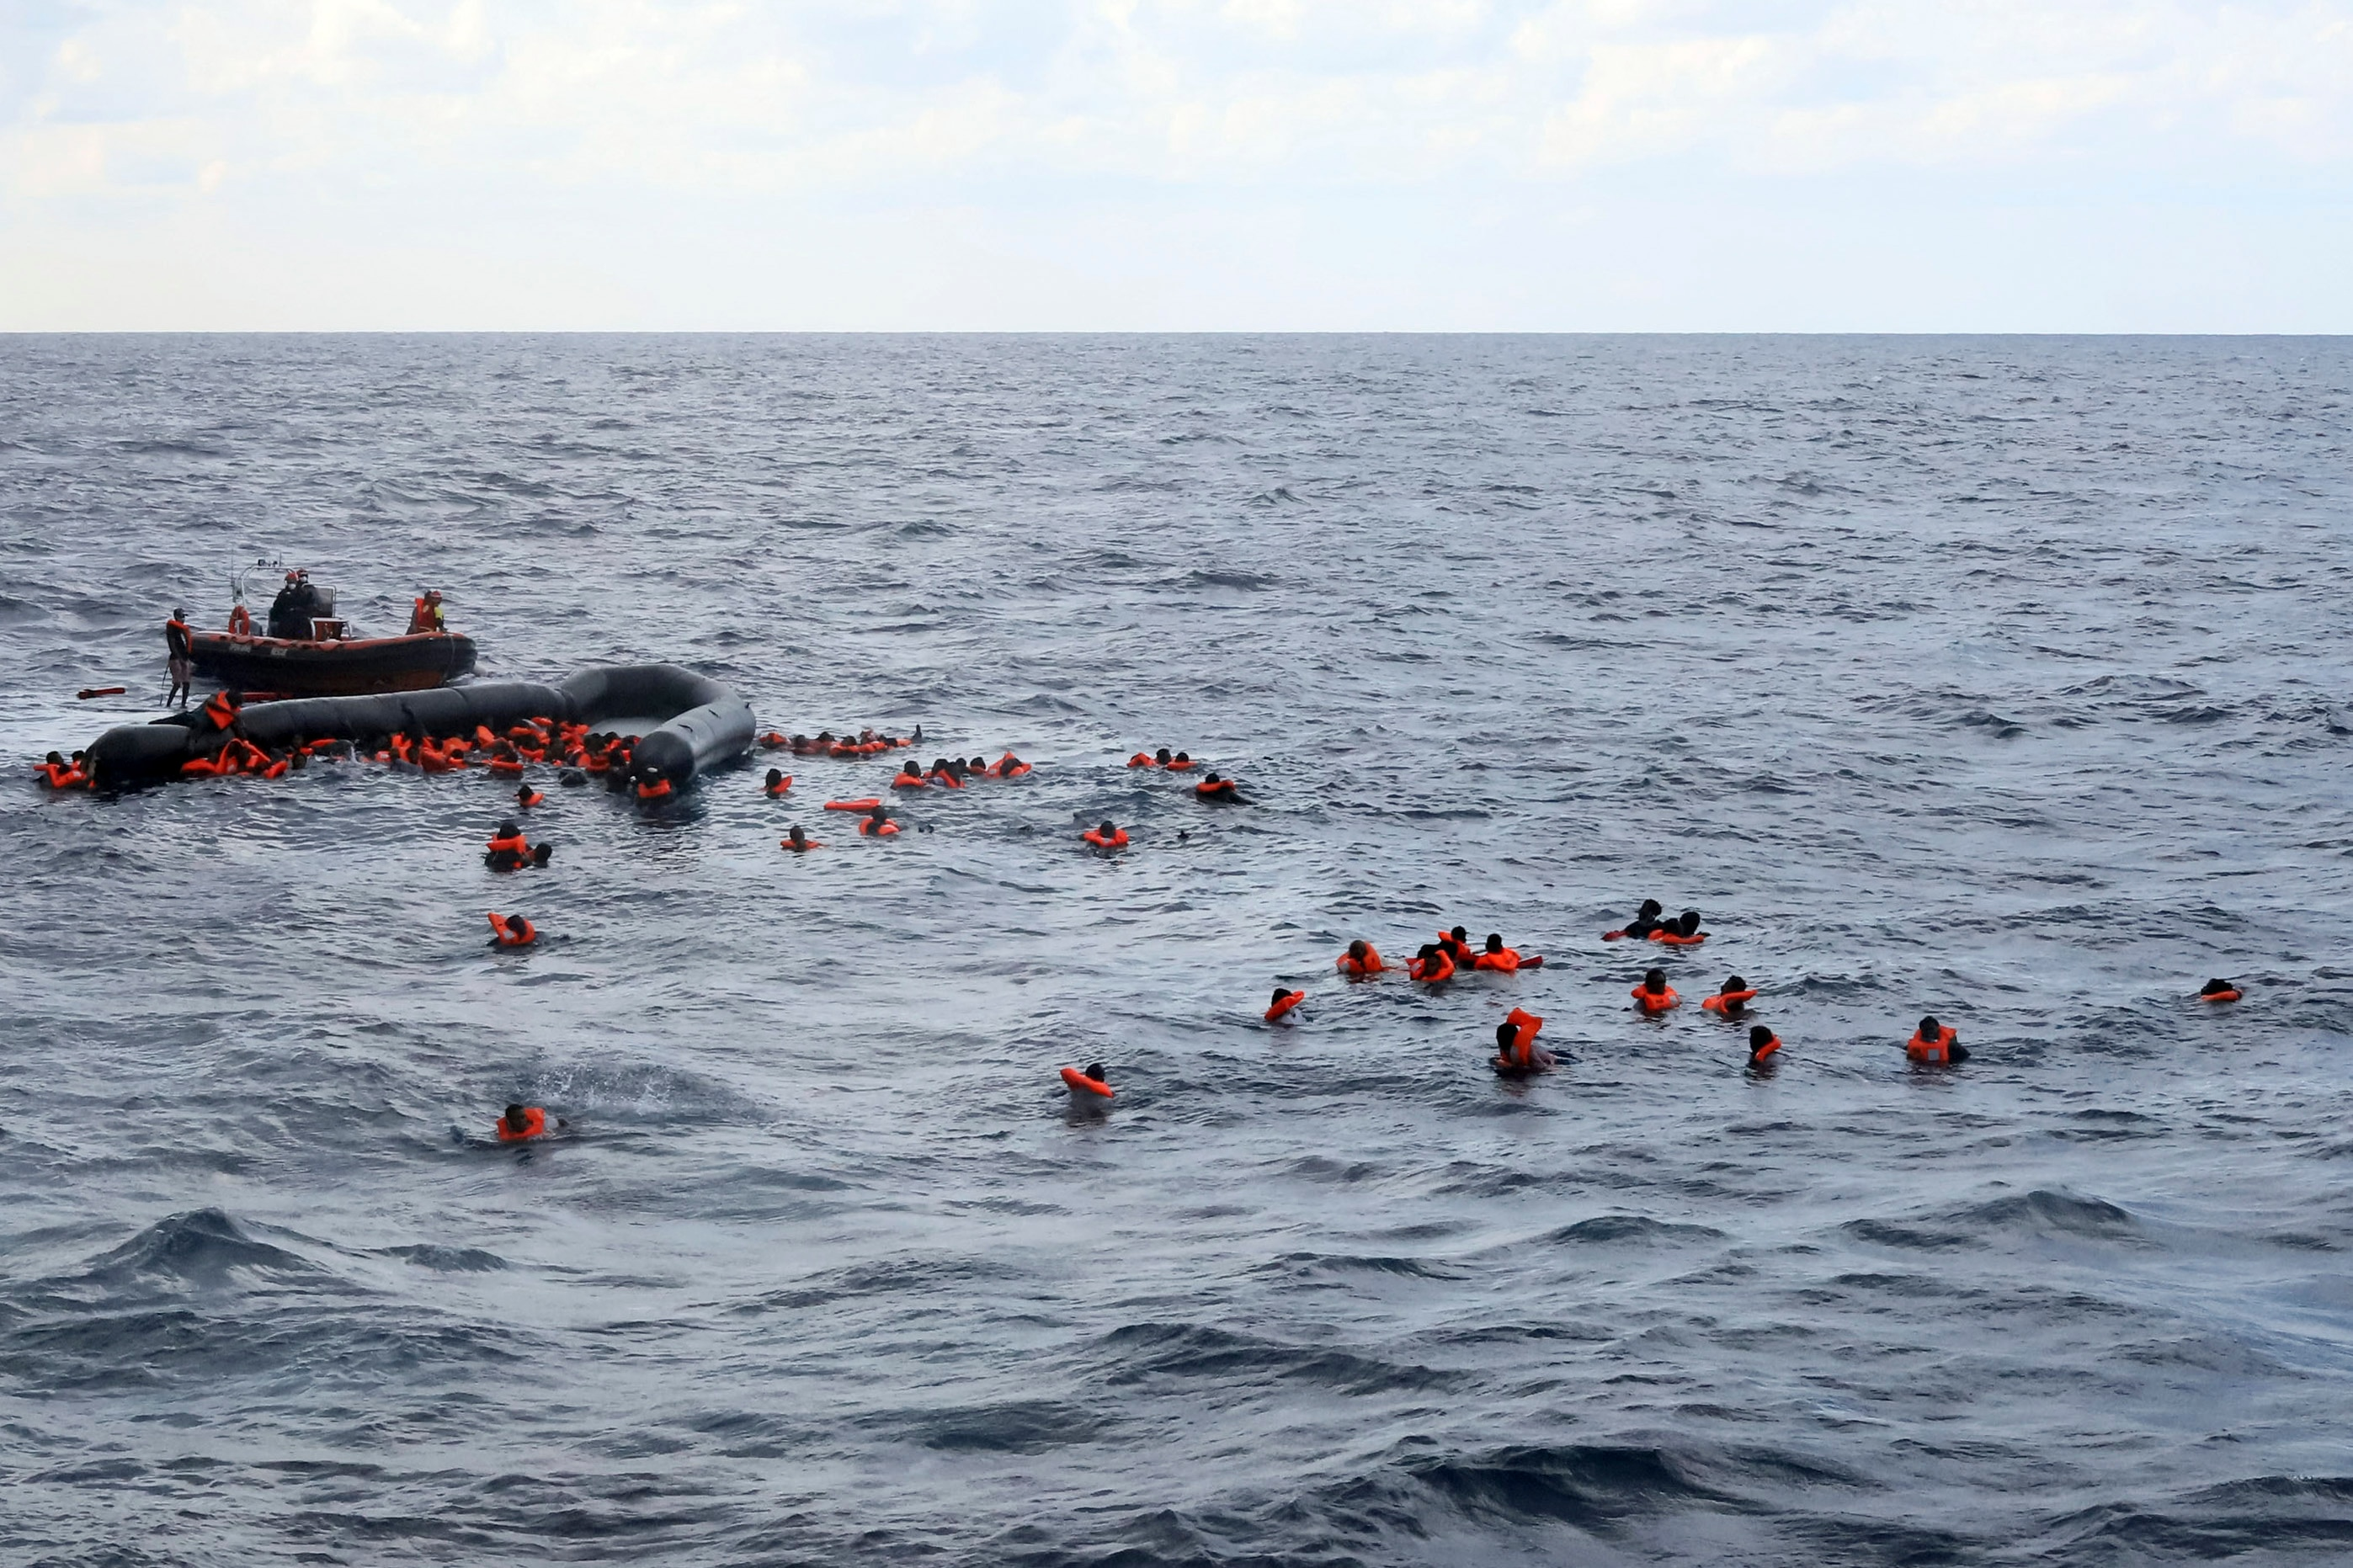 UN Reports 43 Dead After Migrant Ship Sinks Off Libyan Coast - Voice of America